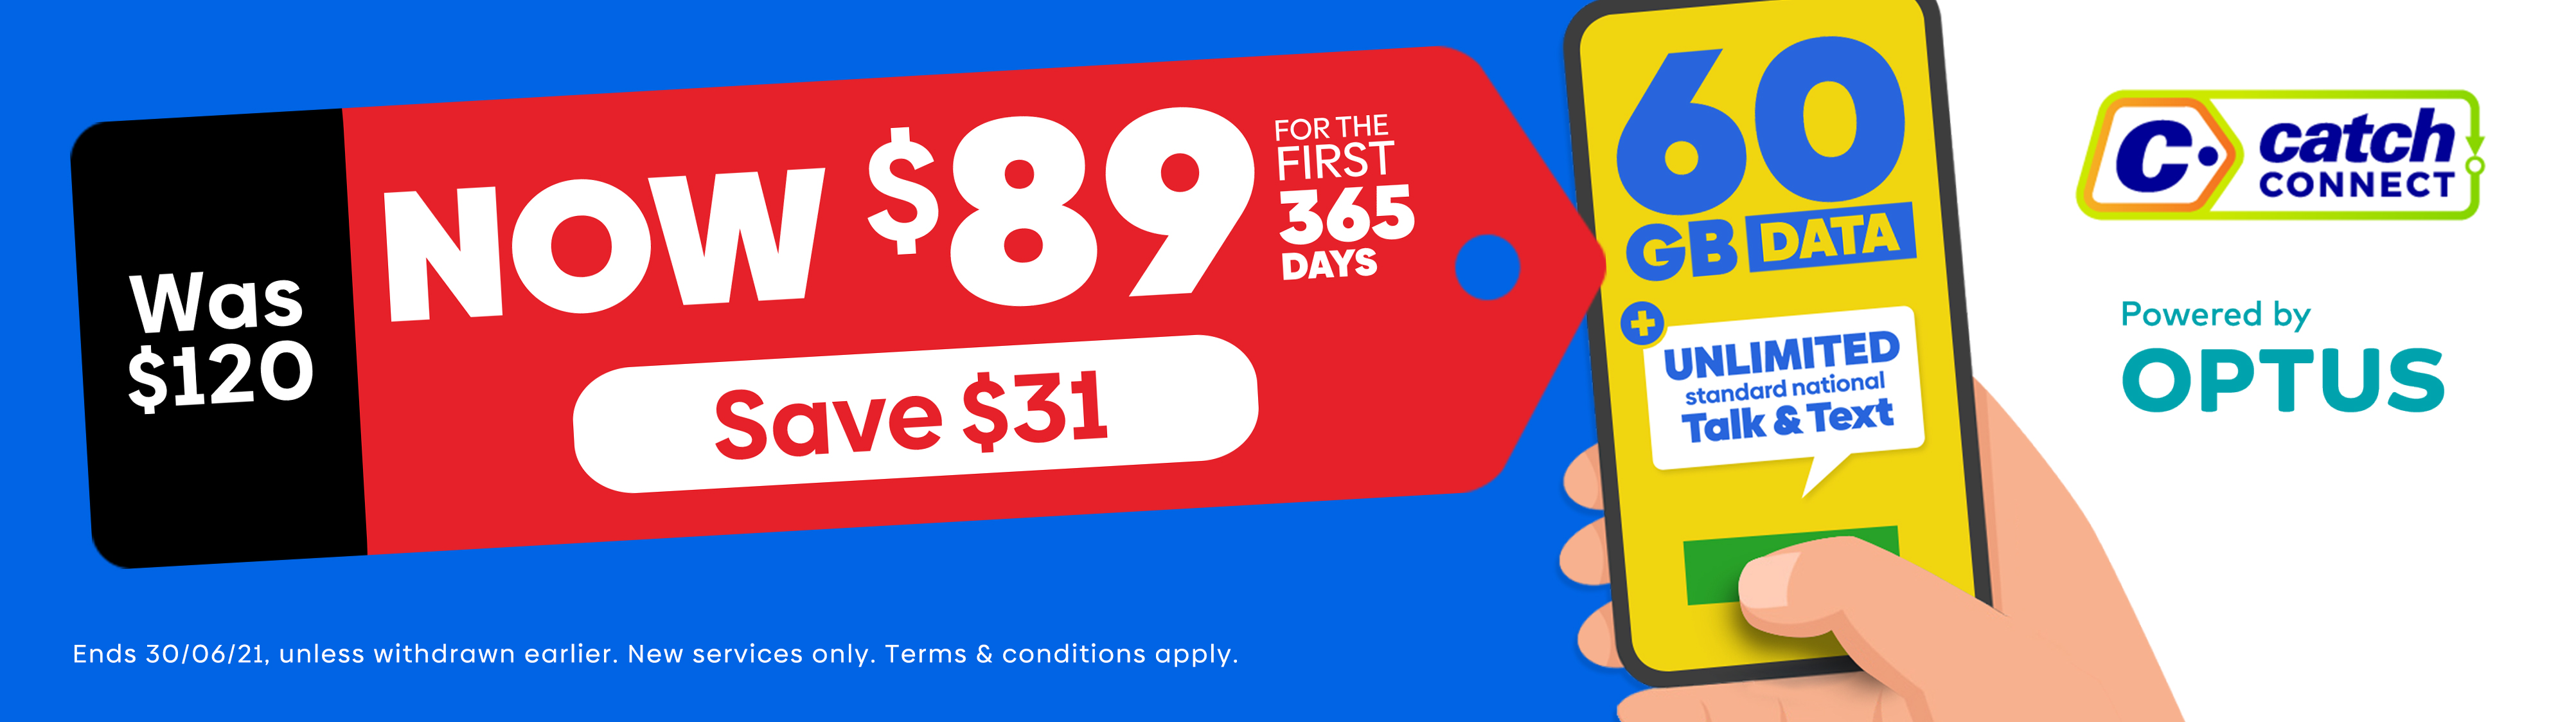 Big Gigs. Call, text, download, stream, repeat! Catch Connect   Powered by Optus